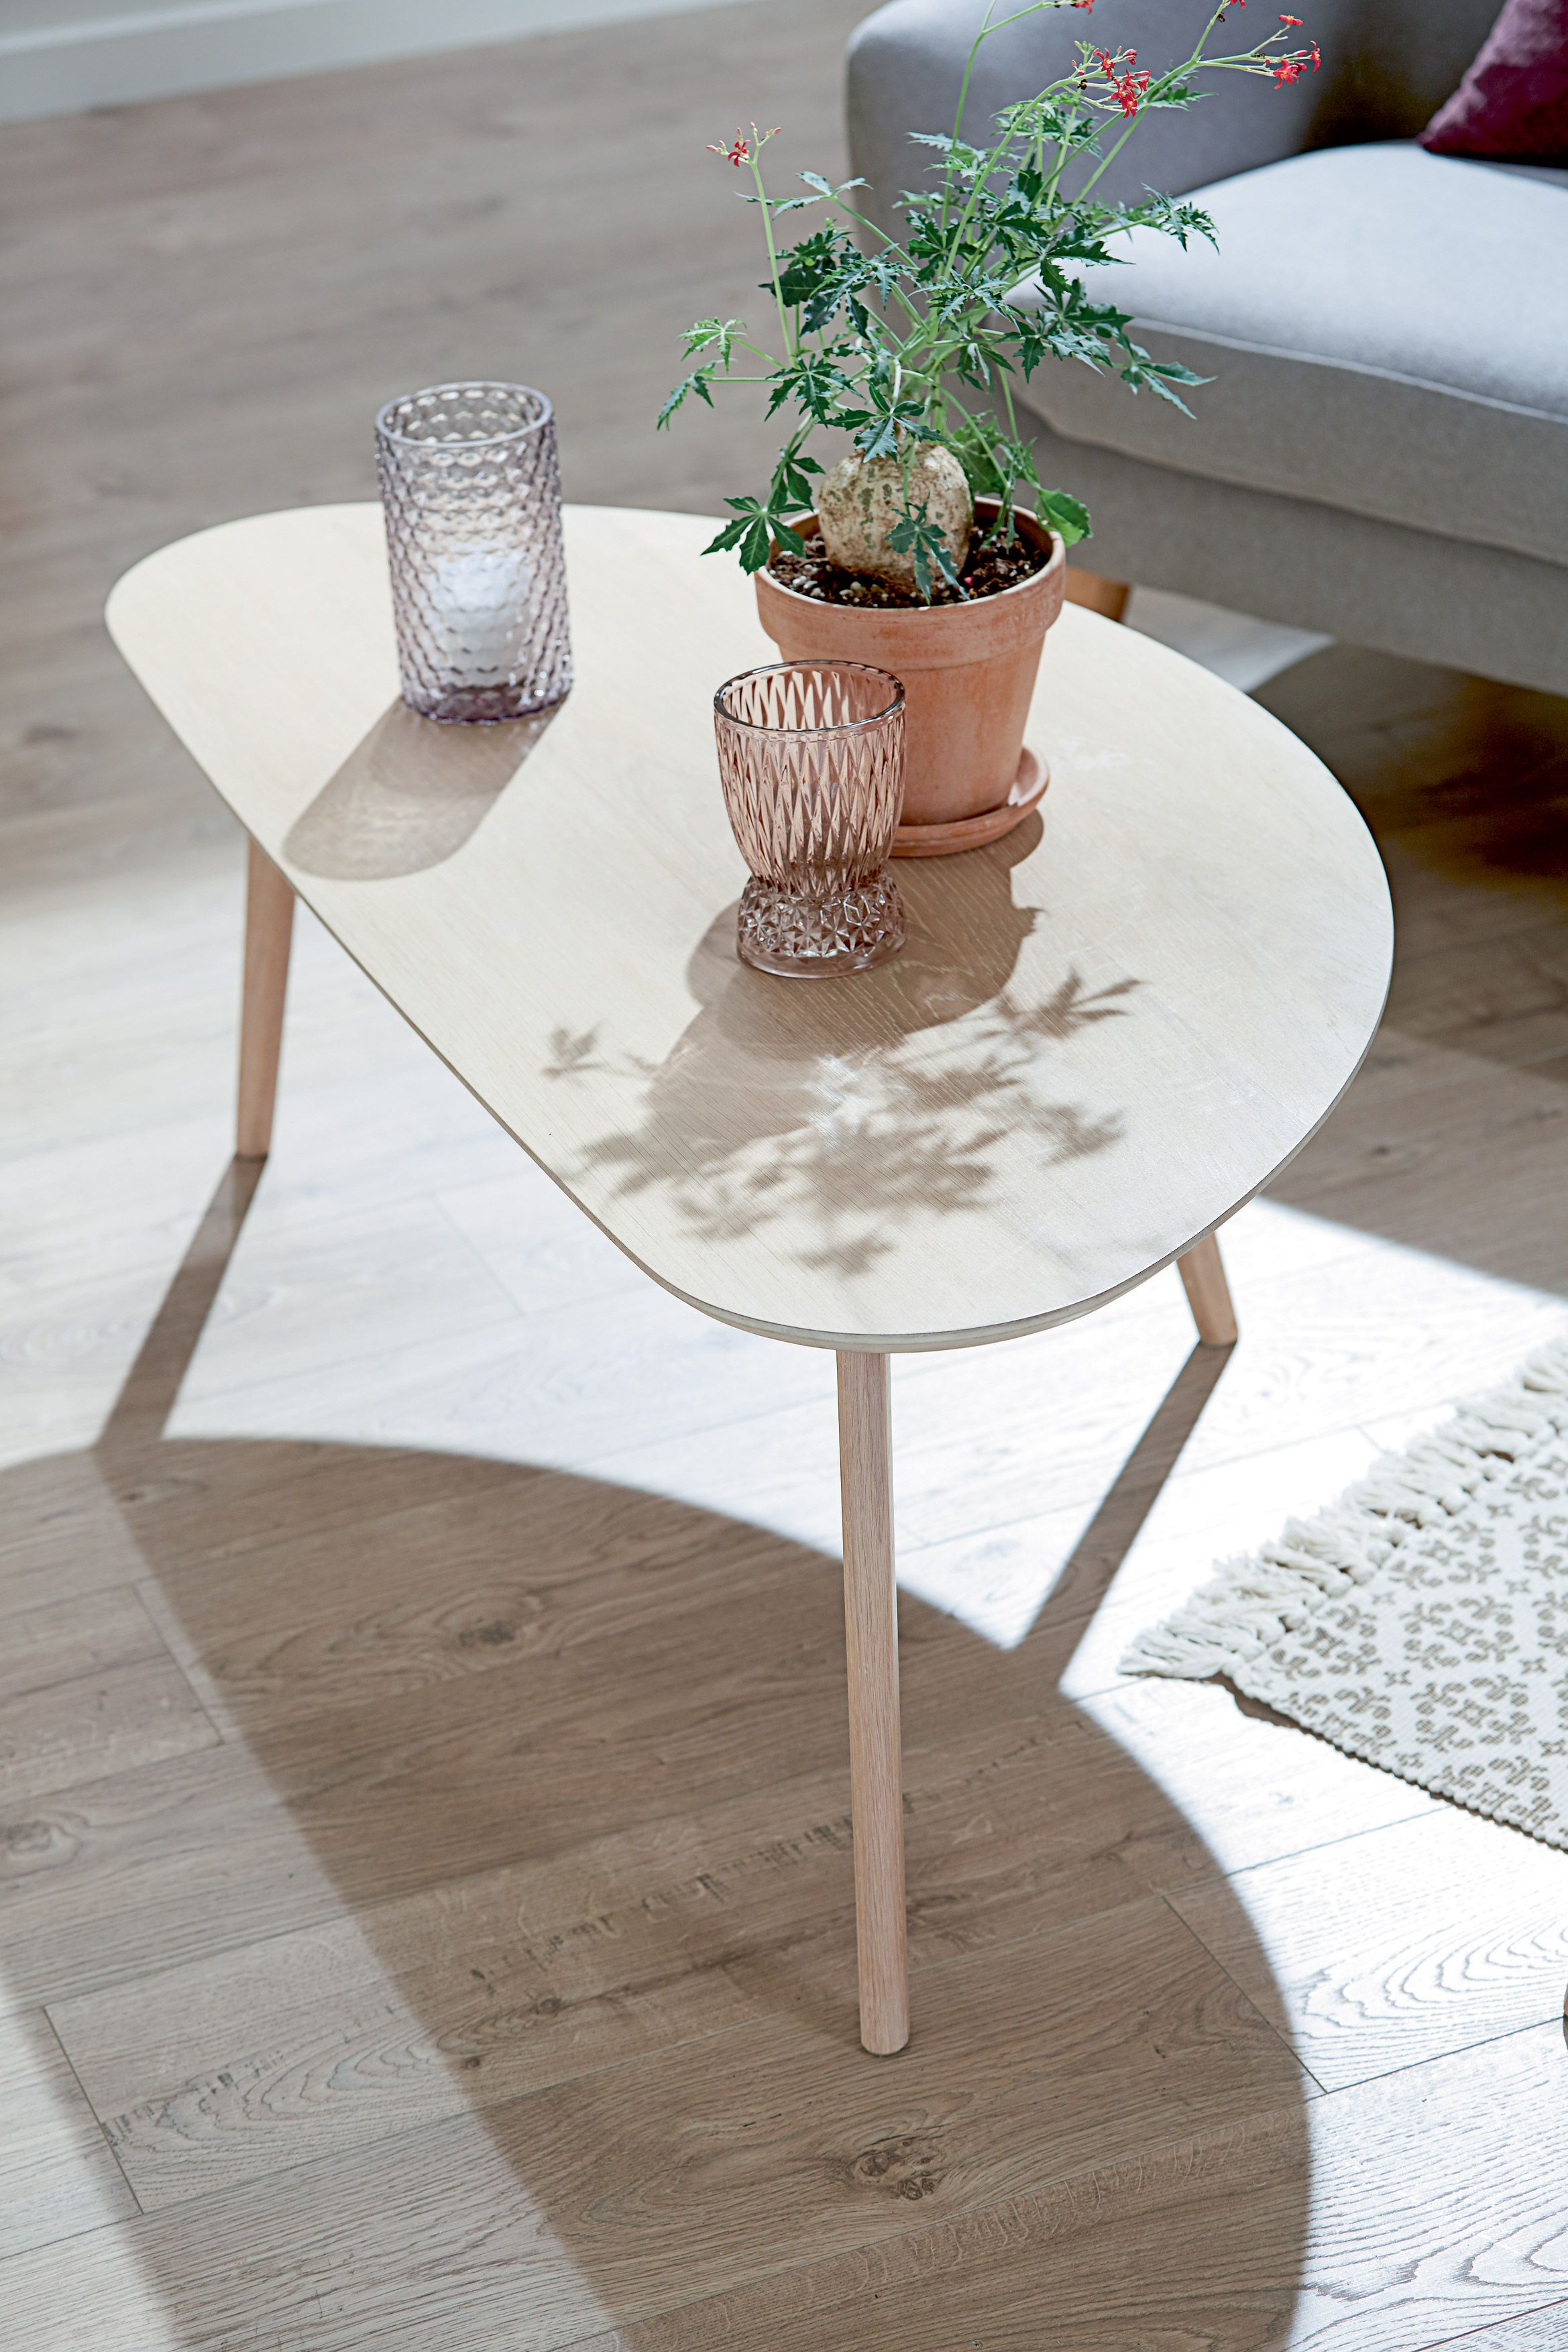 Scandinavian Design And Style With A Light Wooden Coffee Table Furniture Is Perfect For Any Home Quirky Appeal